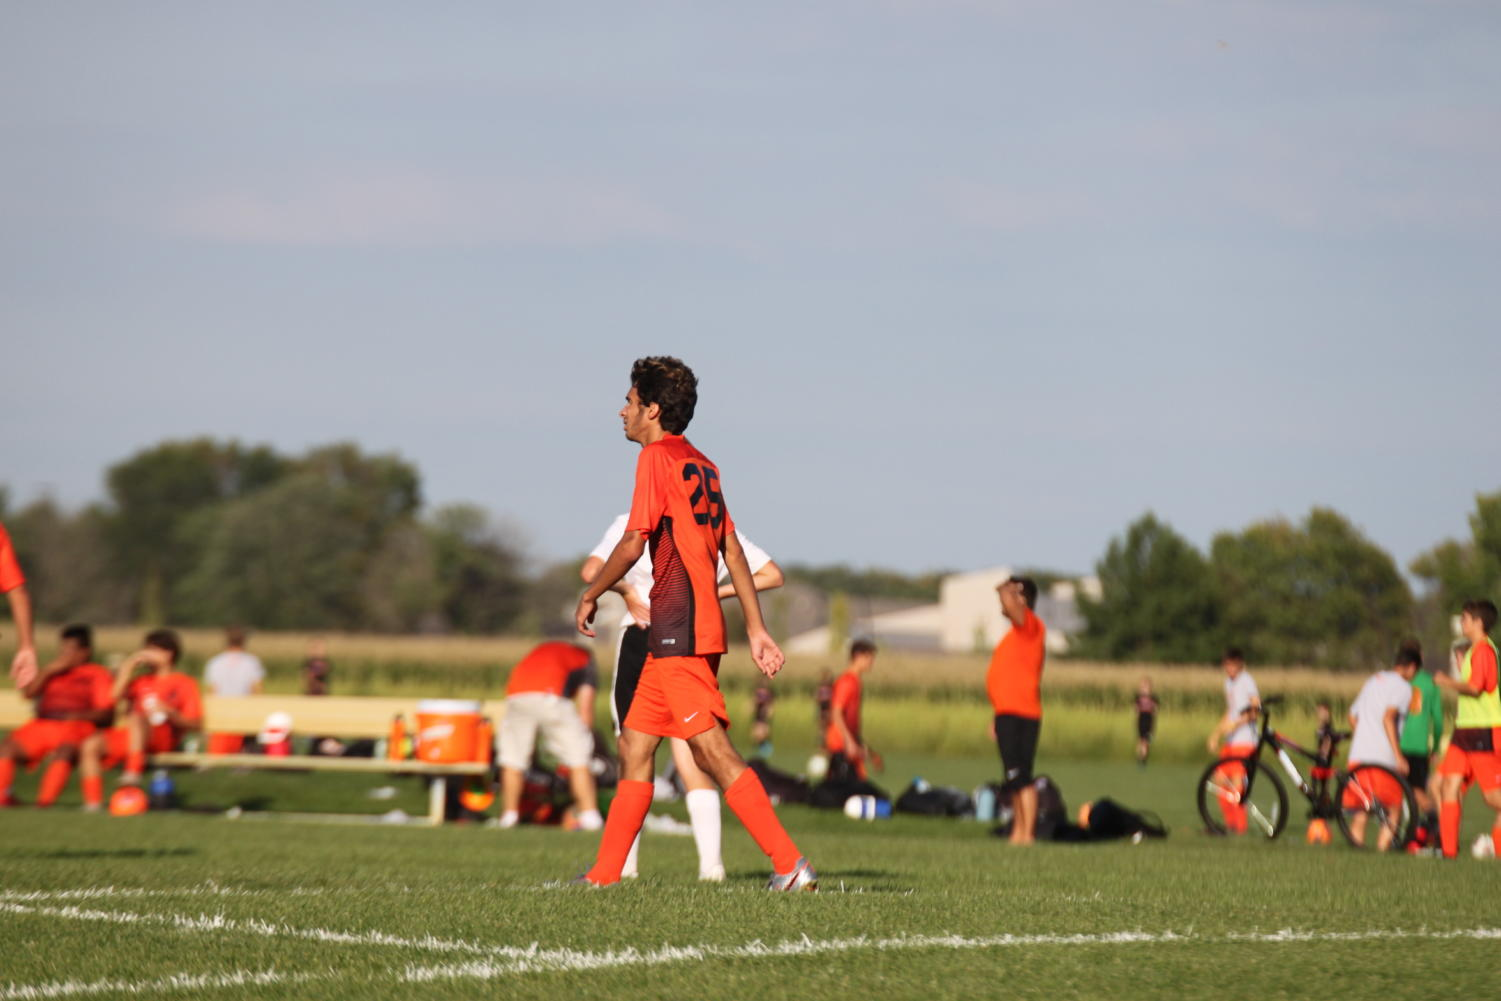 Freshman+Henrique+Carvalho+walks+up+the+field+to+prepare+for+a+goal+kick.